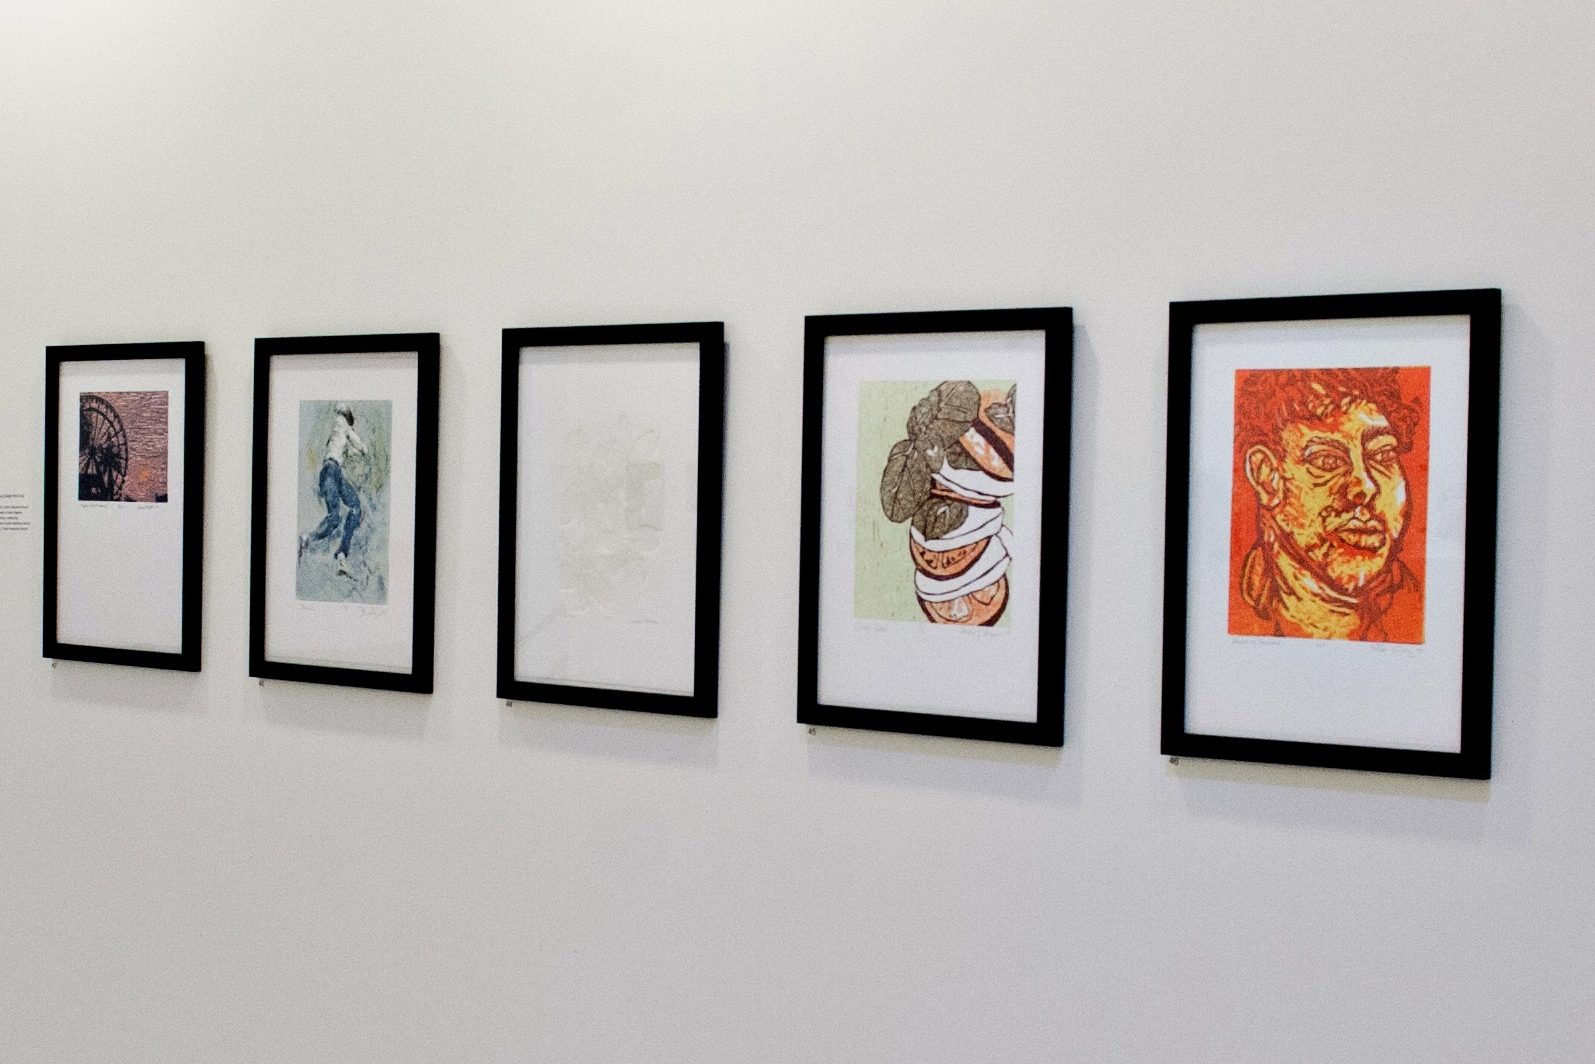 Exhibitions highlight prints and drawings by students and faculty